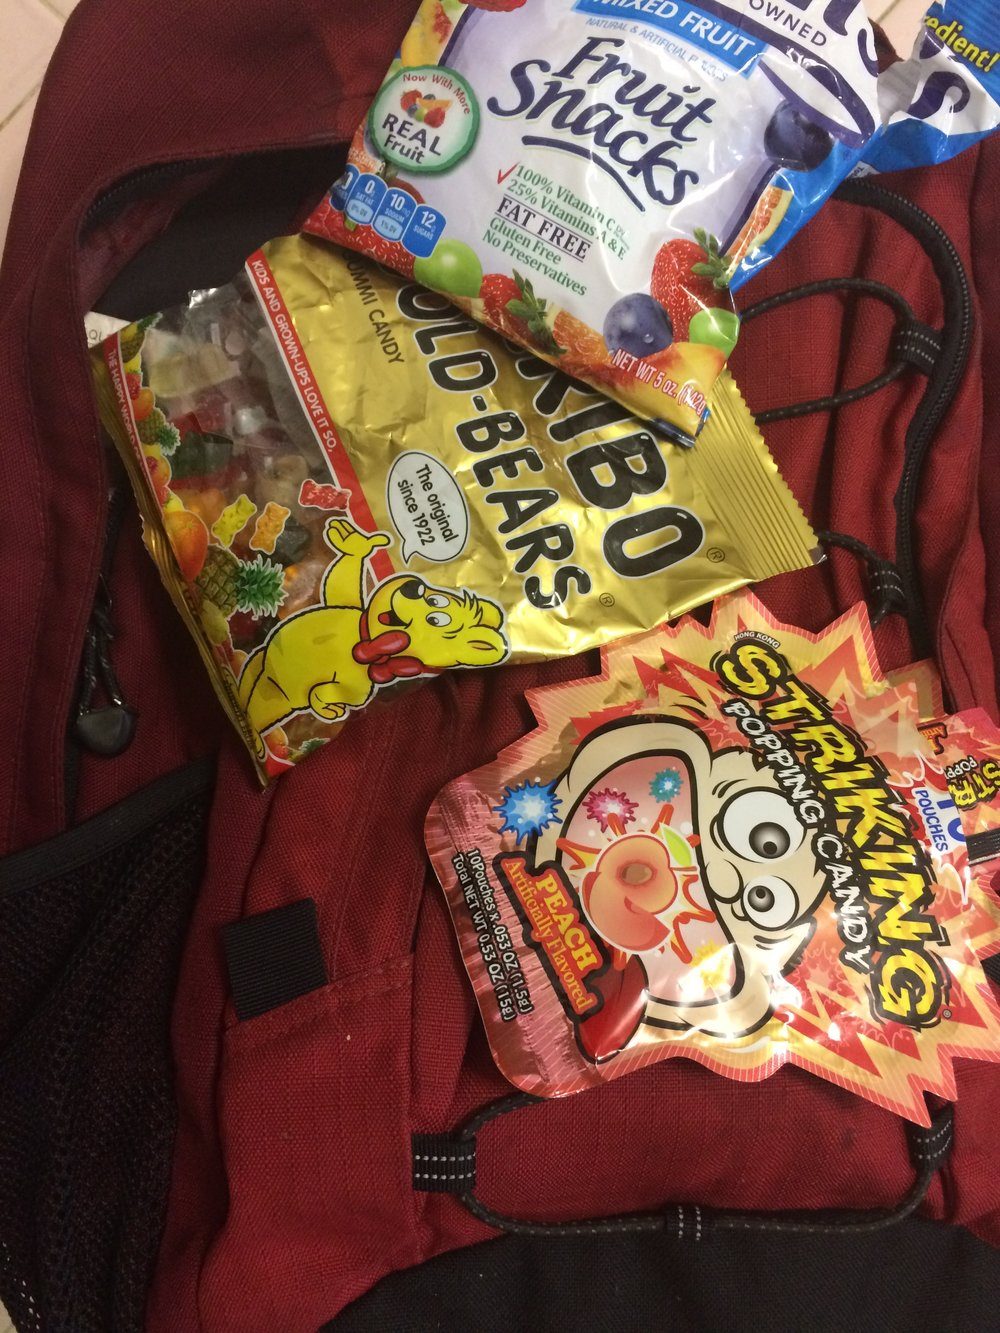 I had plenty of treats in my backpack, just no real food ...